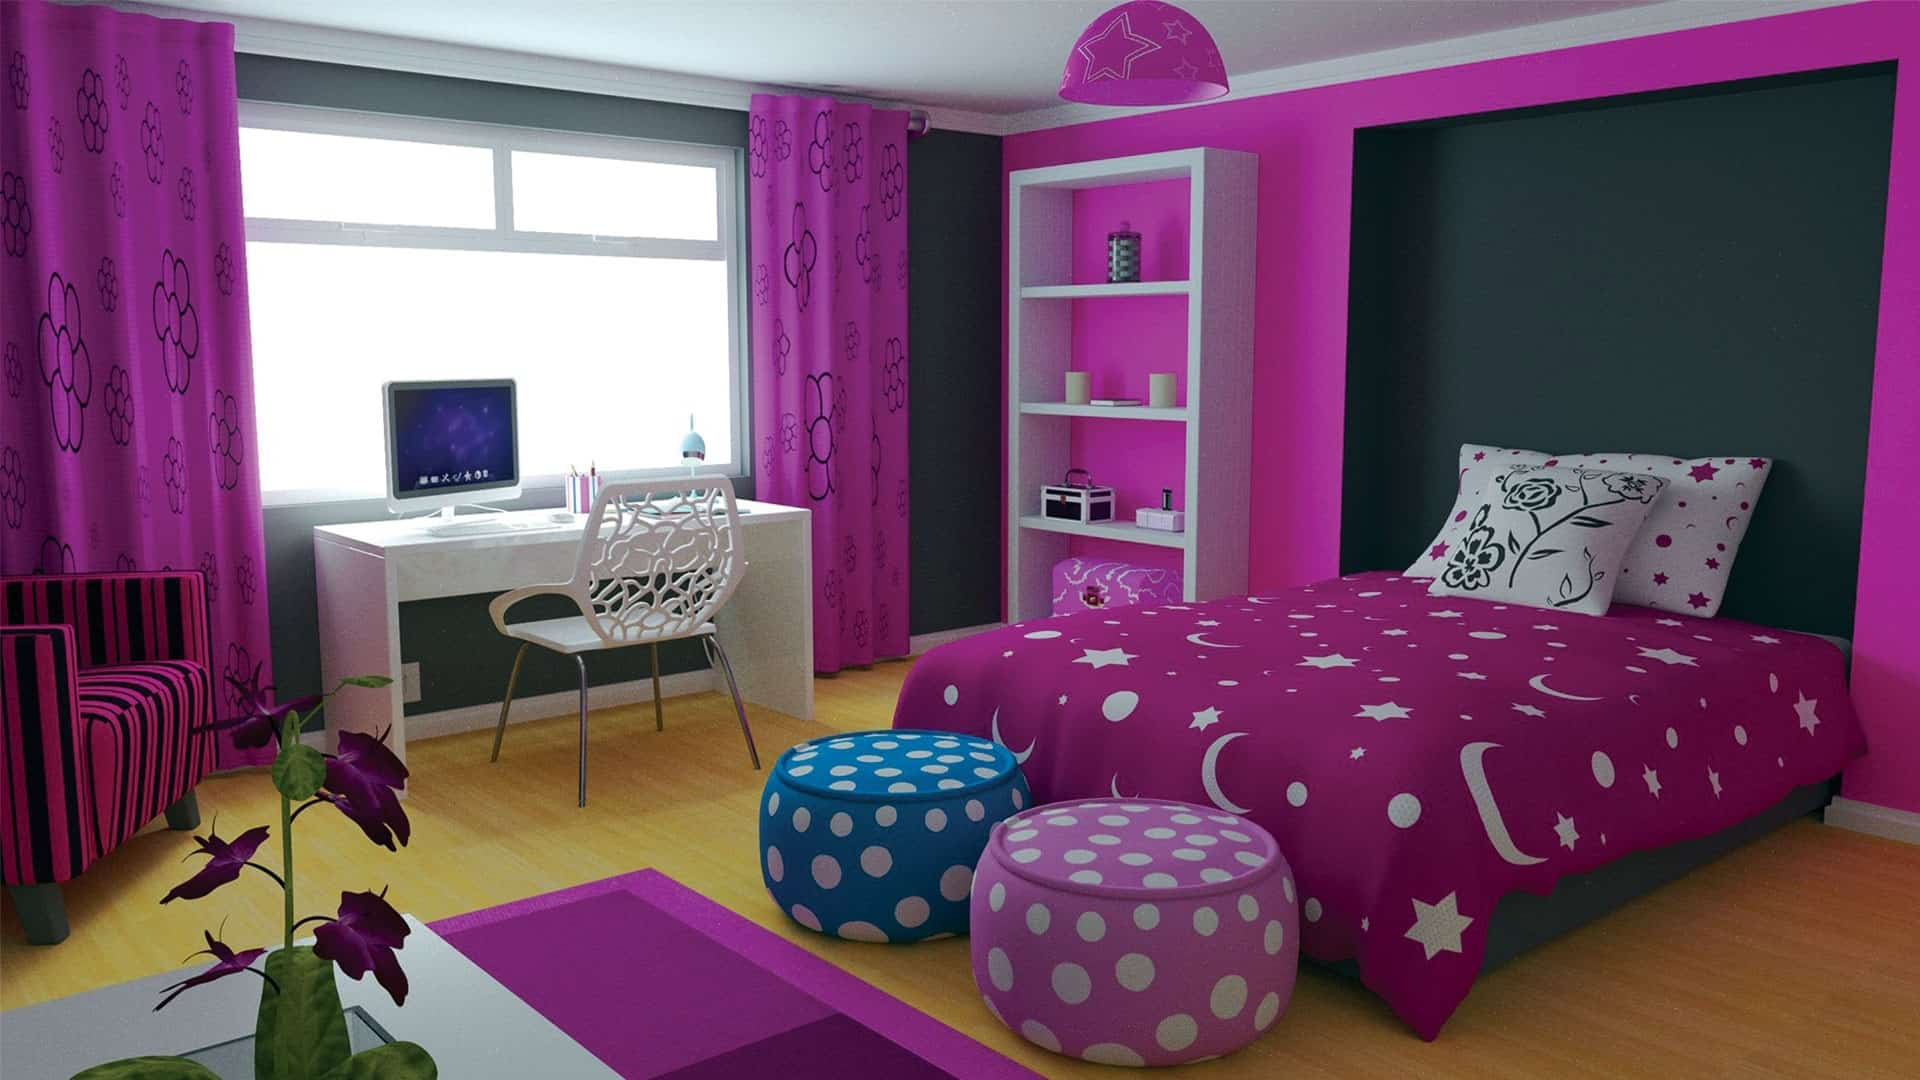 Bedroom colors light purple - Purple Teen Room Girls Room Bedroom Ideas Teen